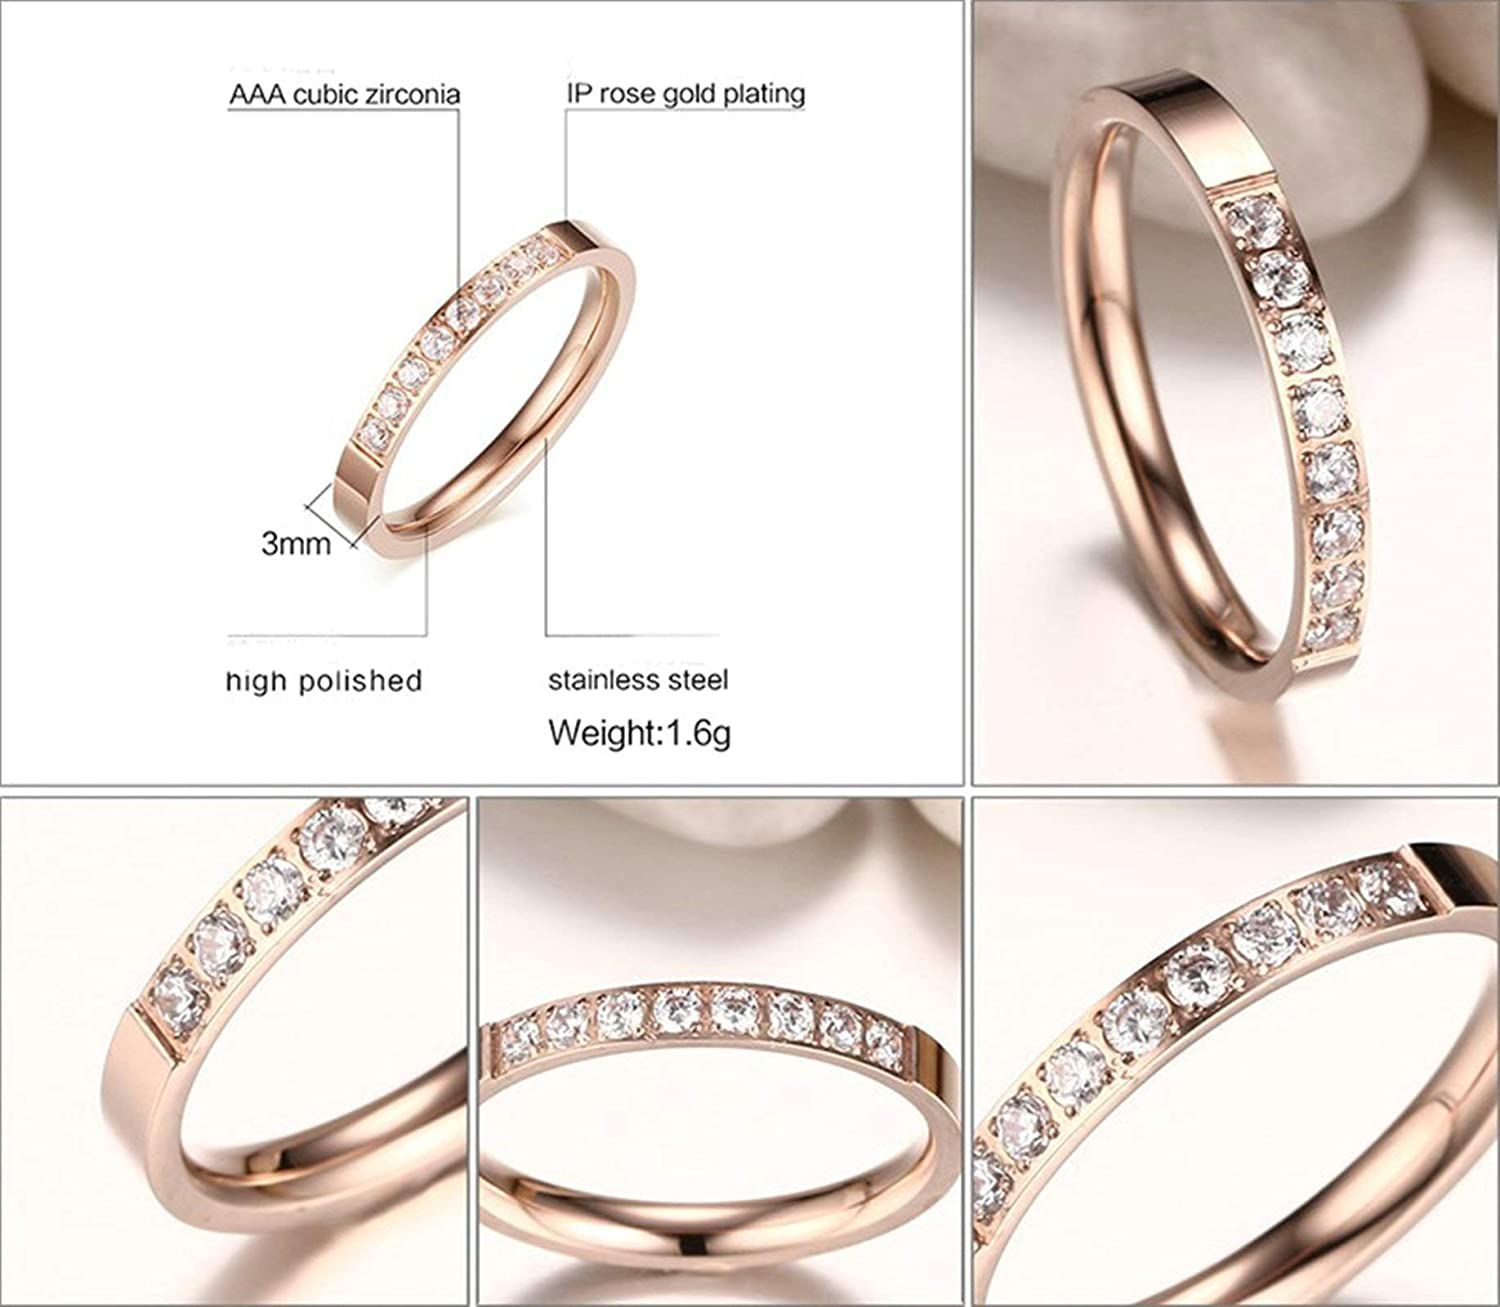 AMDXD Jewelry Rings for Women 8 White Crystals Rose Gold Stainless Steel Rings Jewelry for Women 3 MM,Single Sale